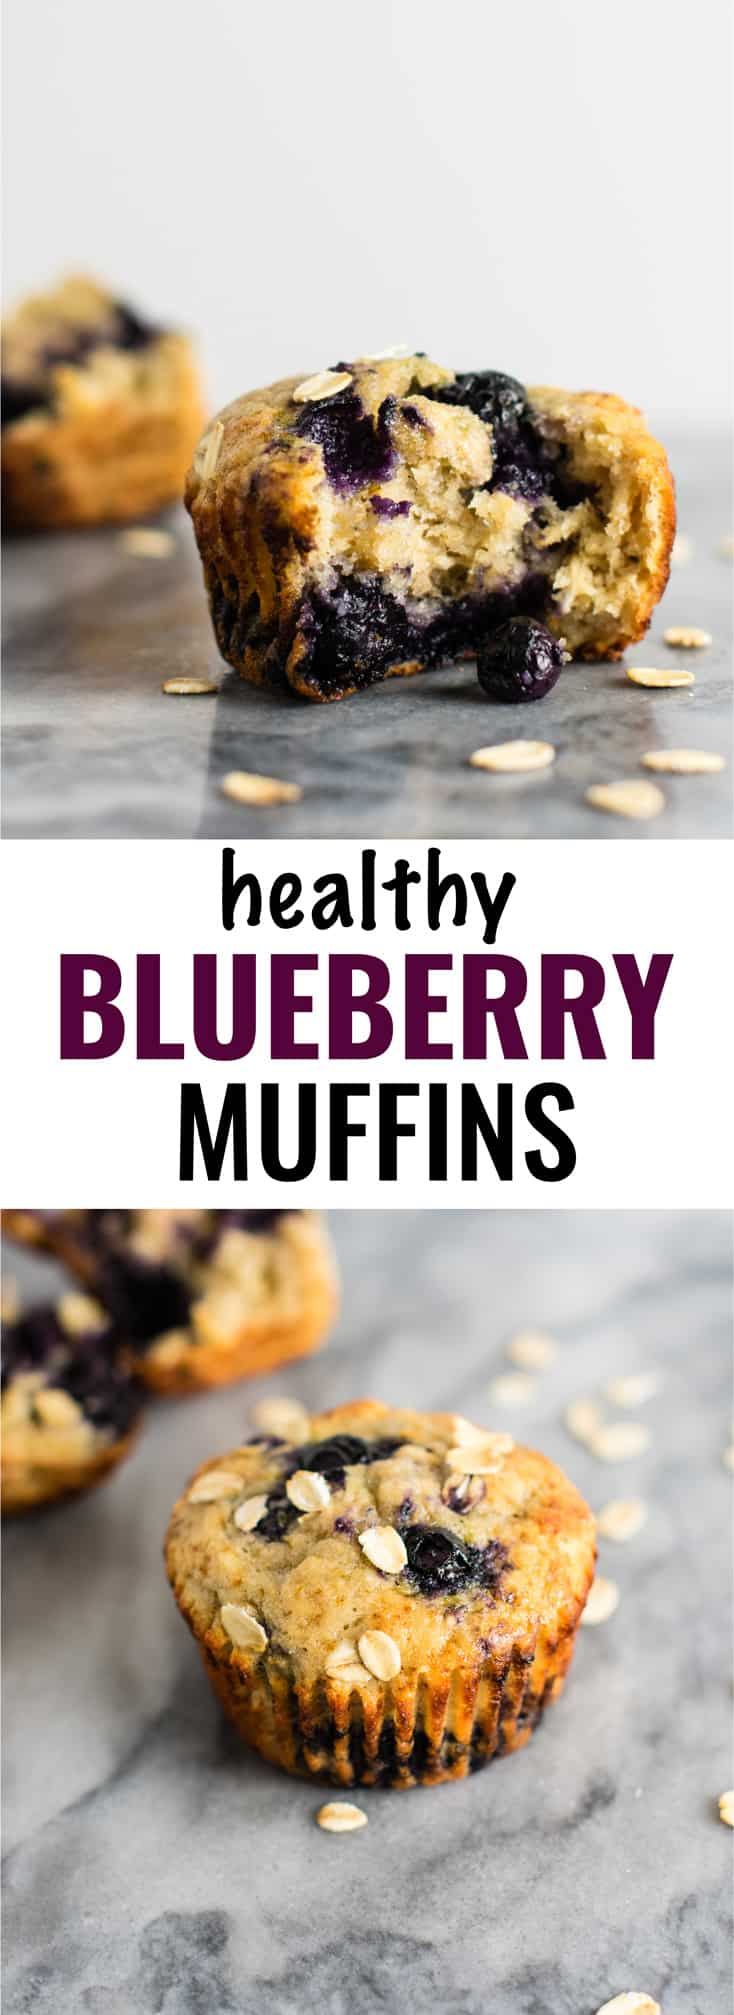 Healthy Blueberry Muffins Recipe - with greek yogurt